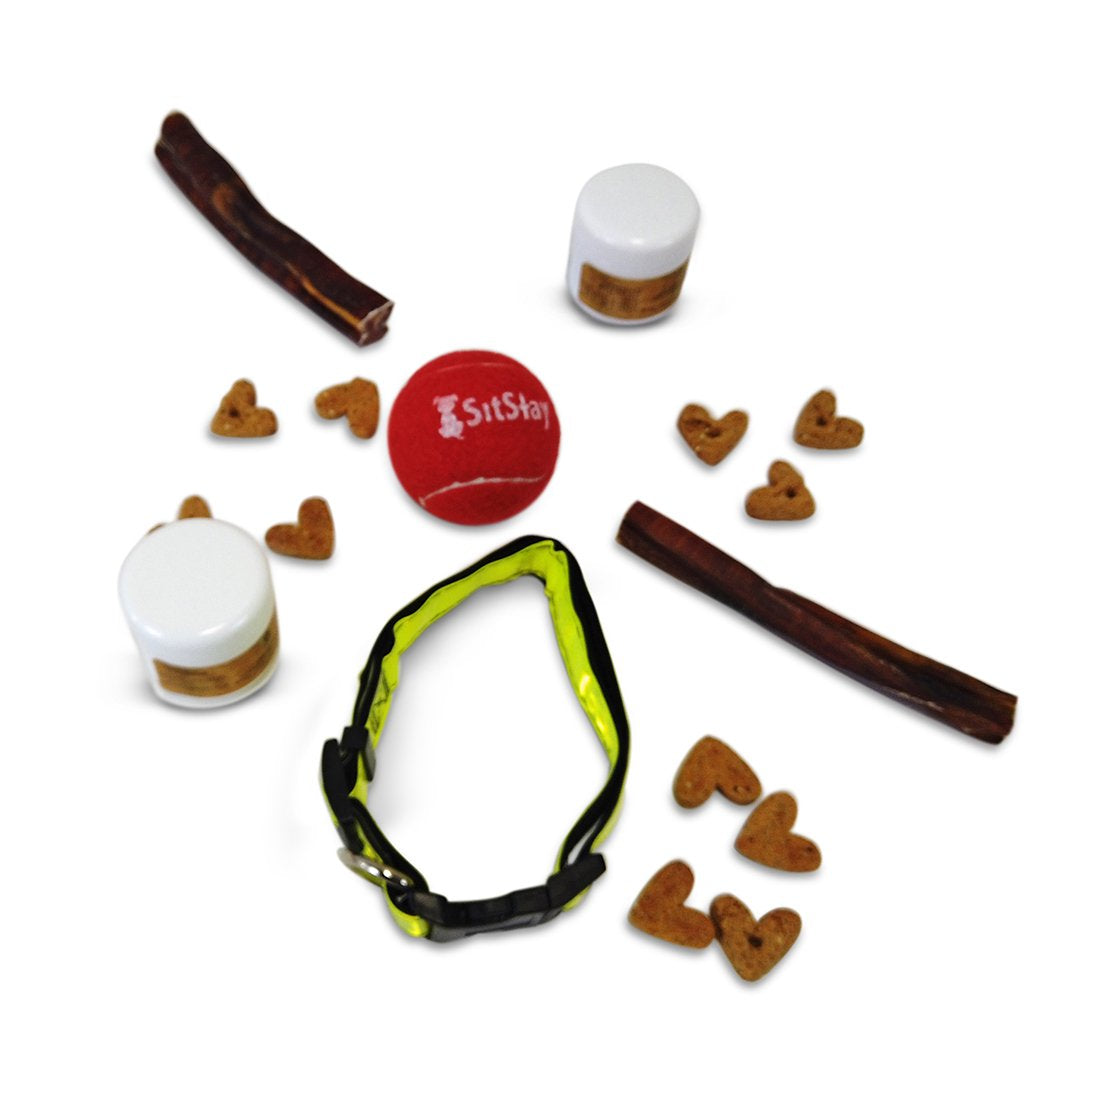 PetNV Collar, 2 bully sticks, red sitstay tennis ball, CBD coconut oil sample, bacon and cheese baked dog treats sample